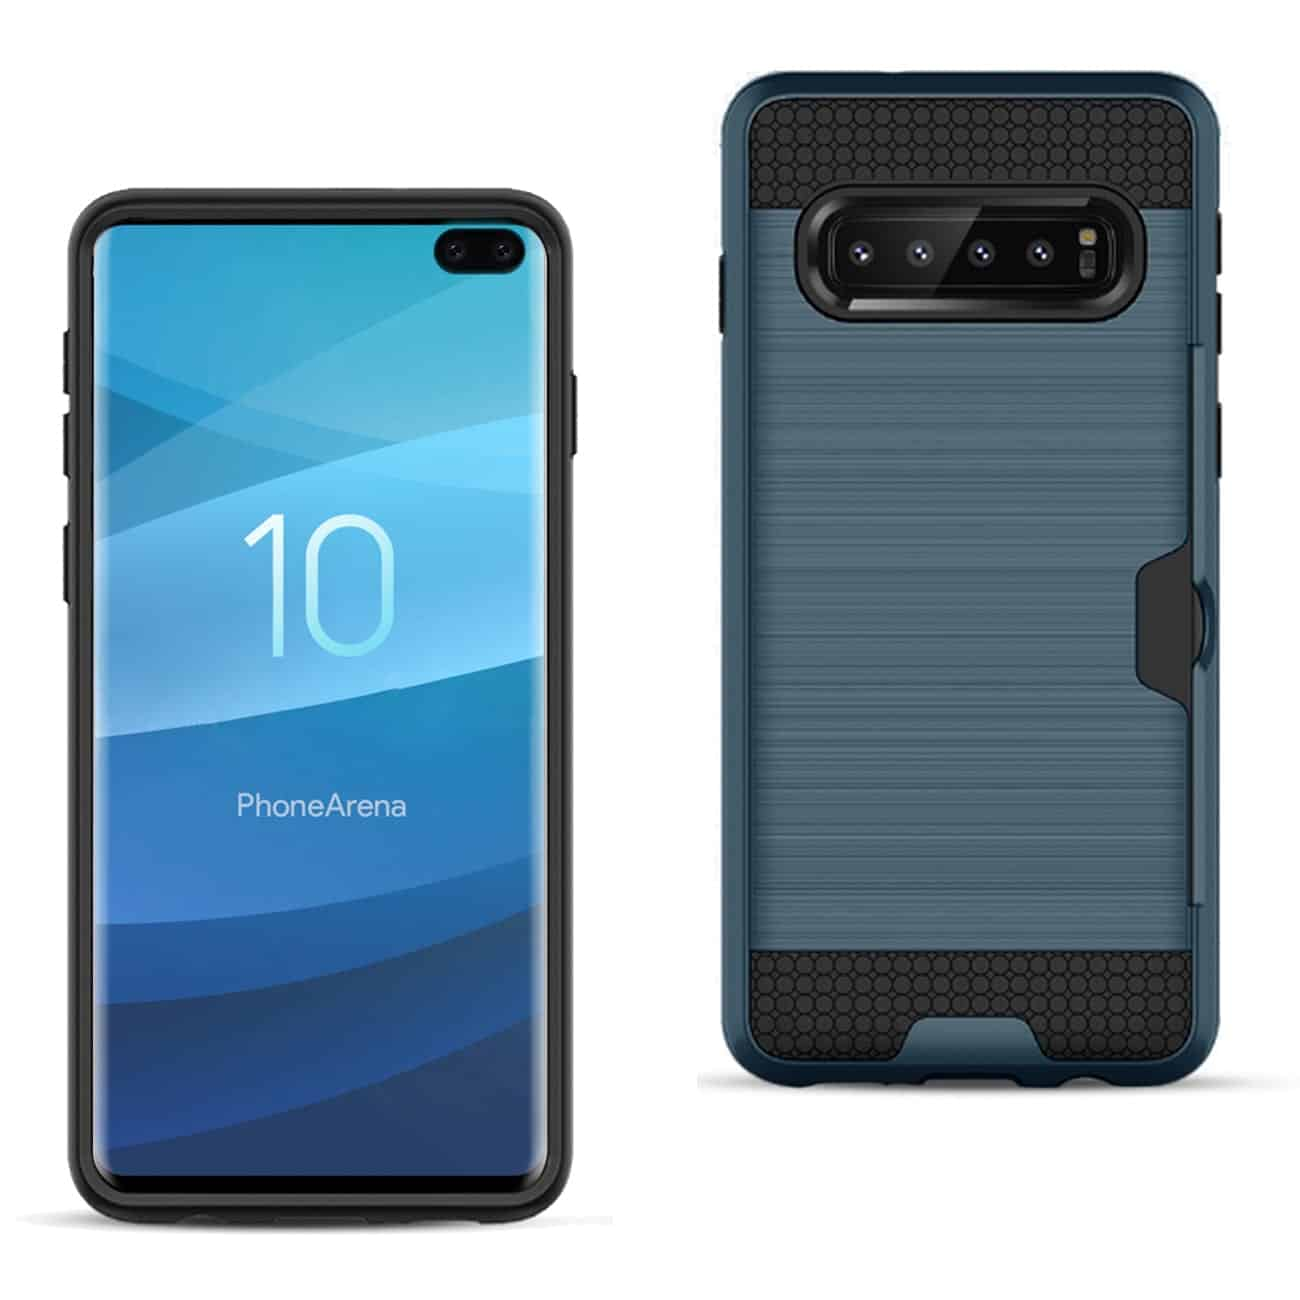 SAMSUNG GALAXY S10 Plus Slim Armor Hybrid Case With Card Holder In Navy